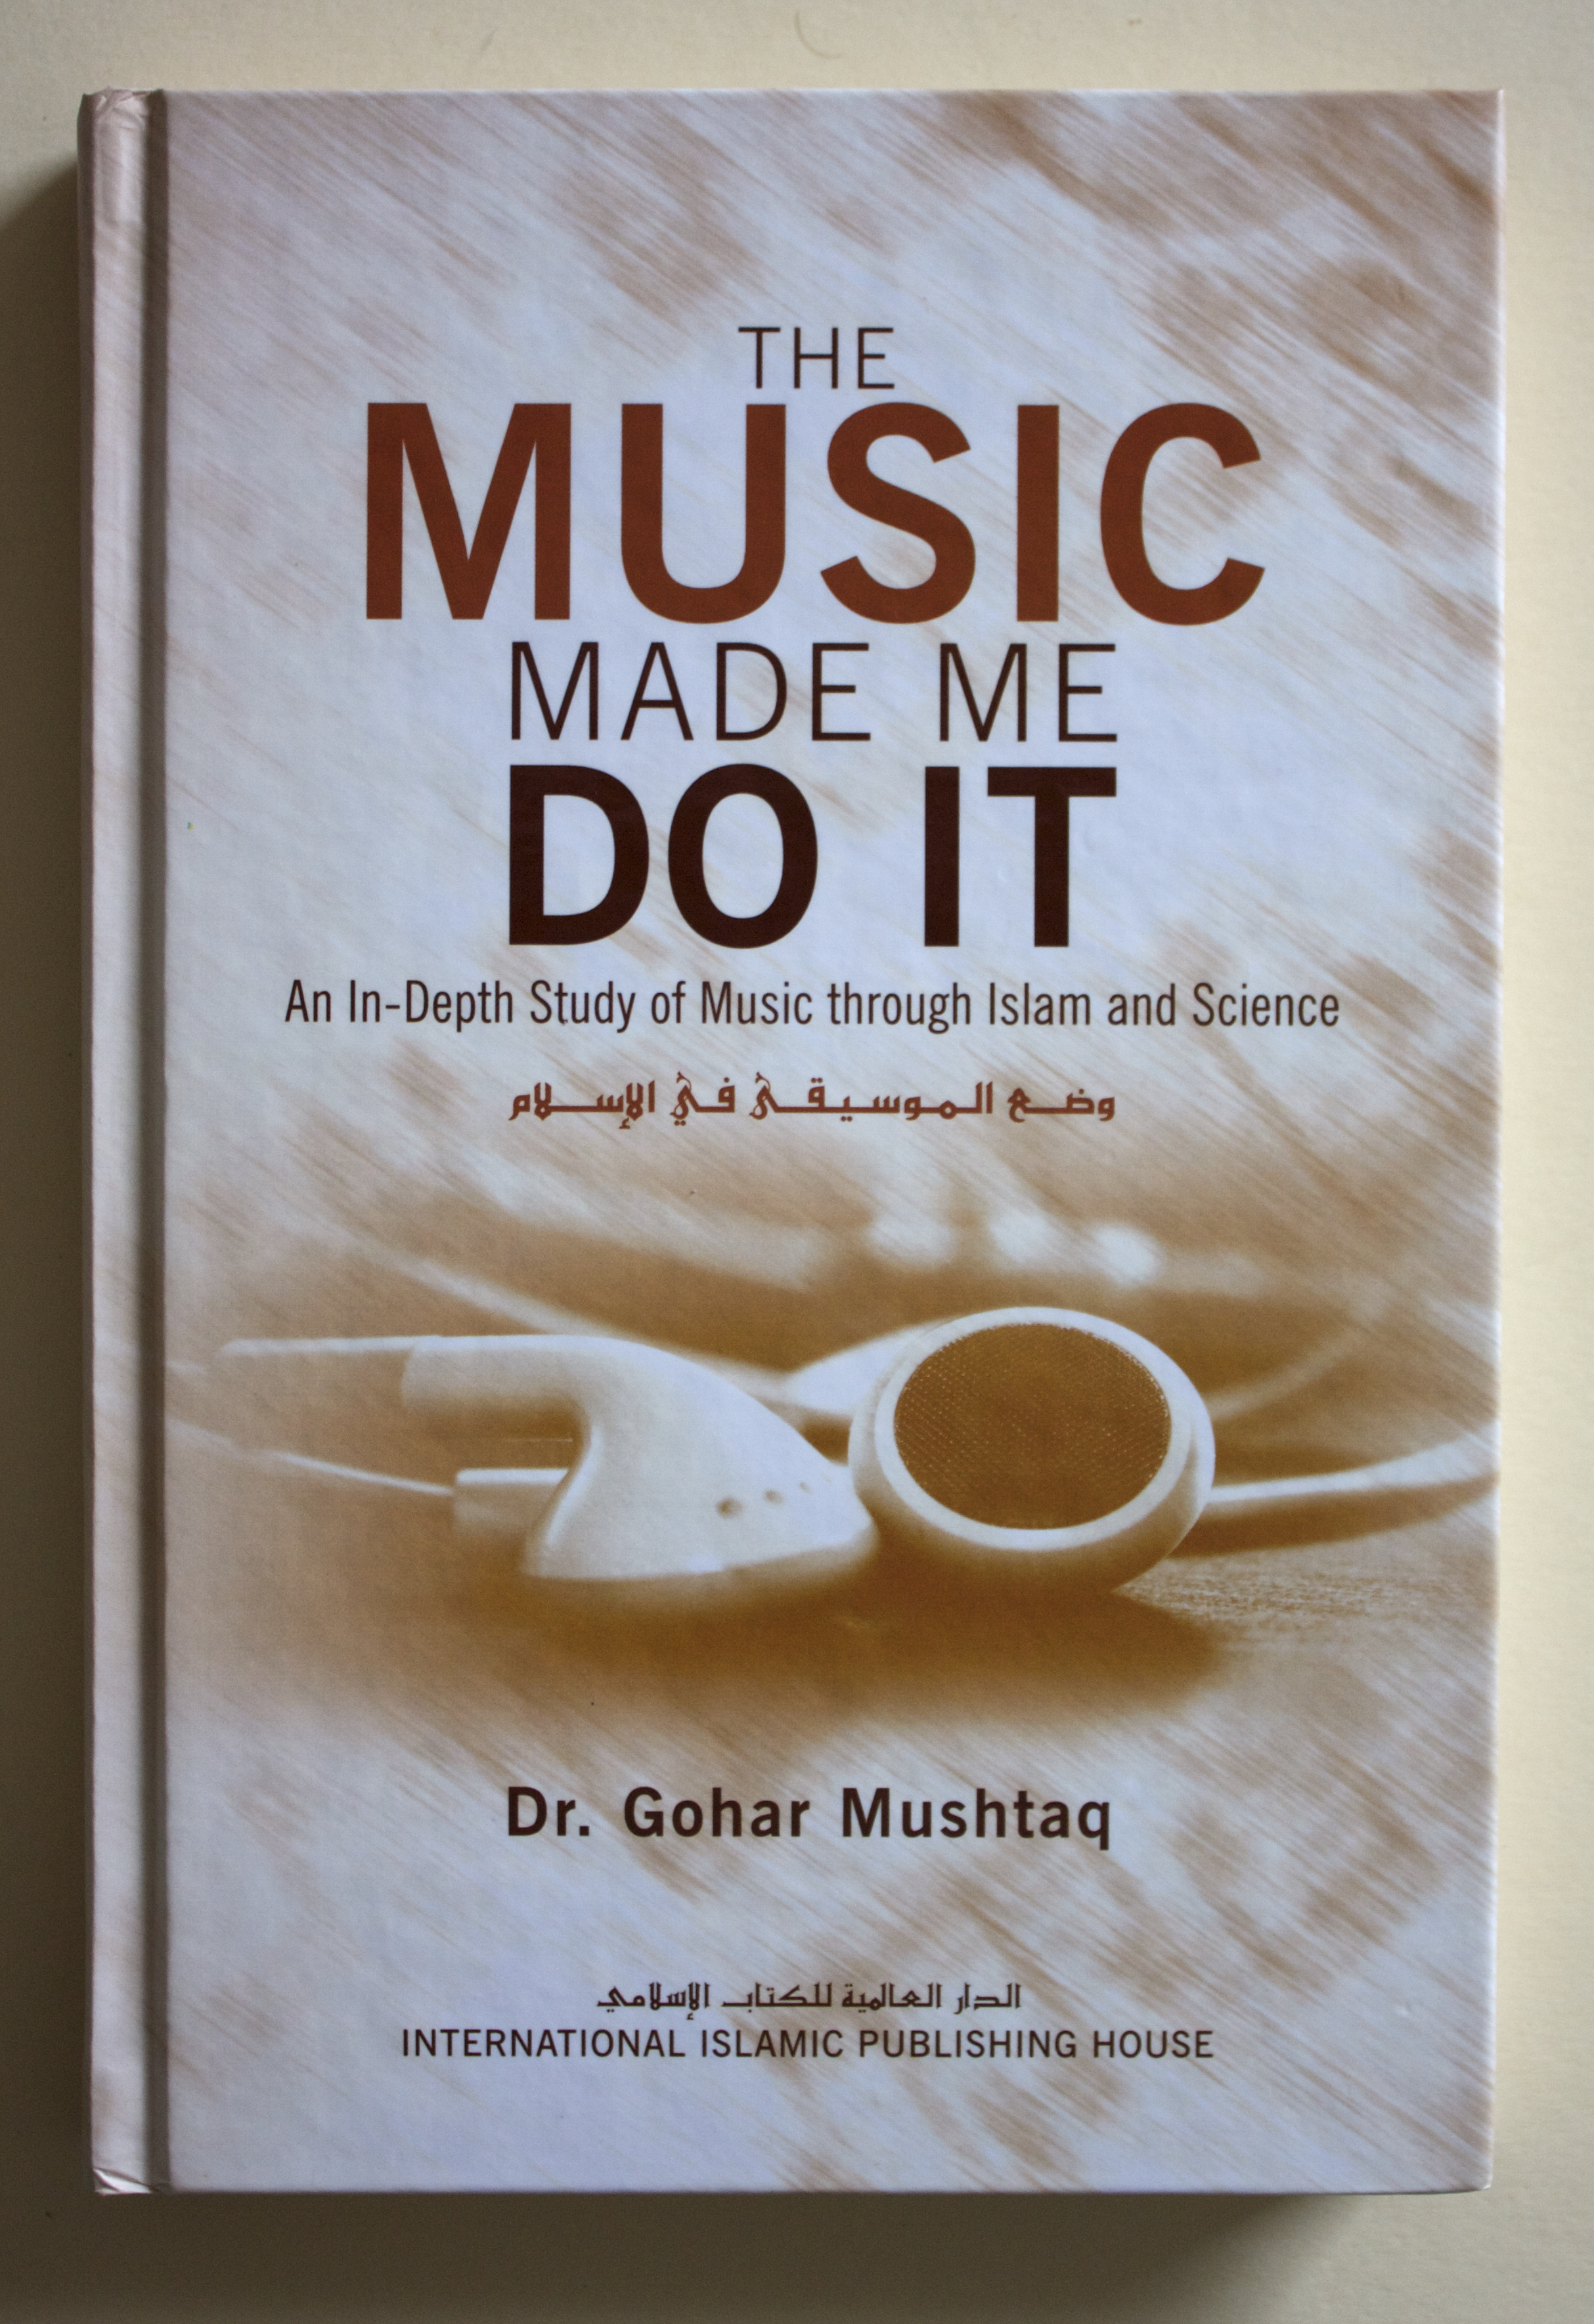 "Copy of ""The Music Made Me Do It: An In-Depth Study of Music through Islam and Science"" by Dr. Gohar Mushtaq (International Islamic Publishing House, 2011)"